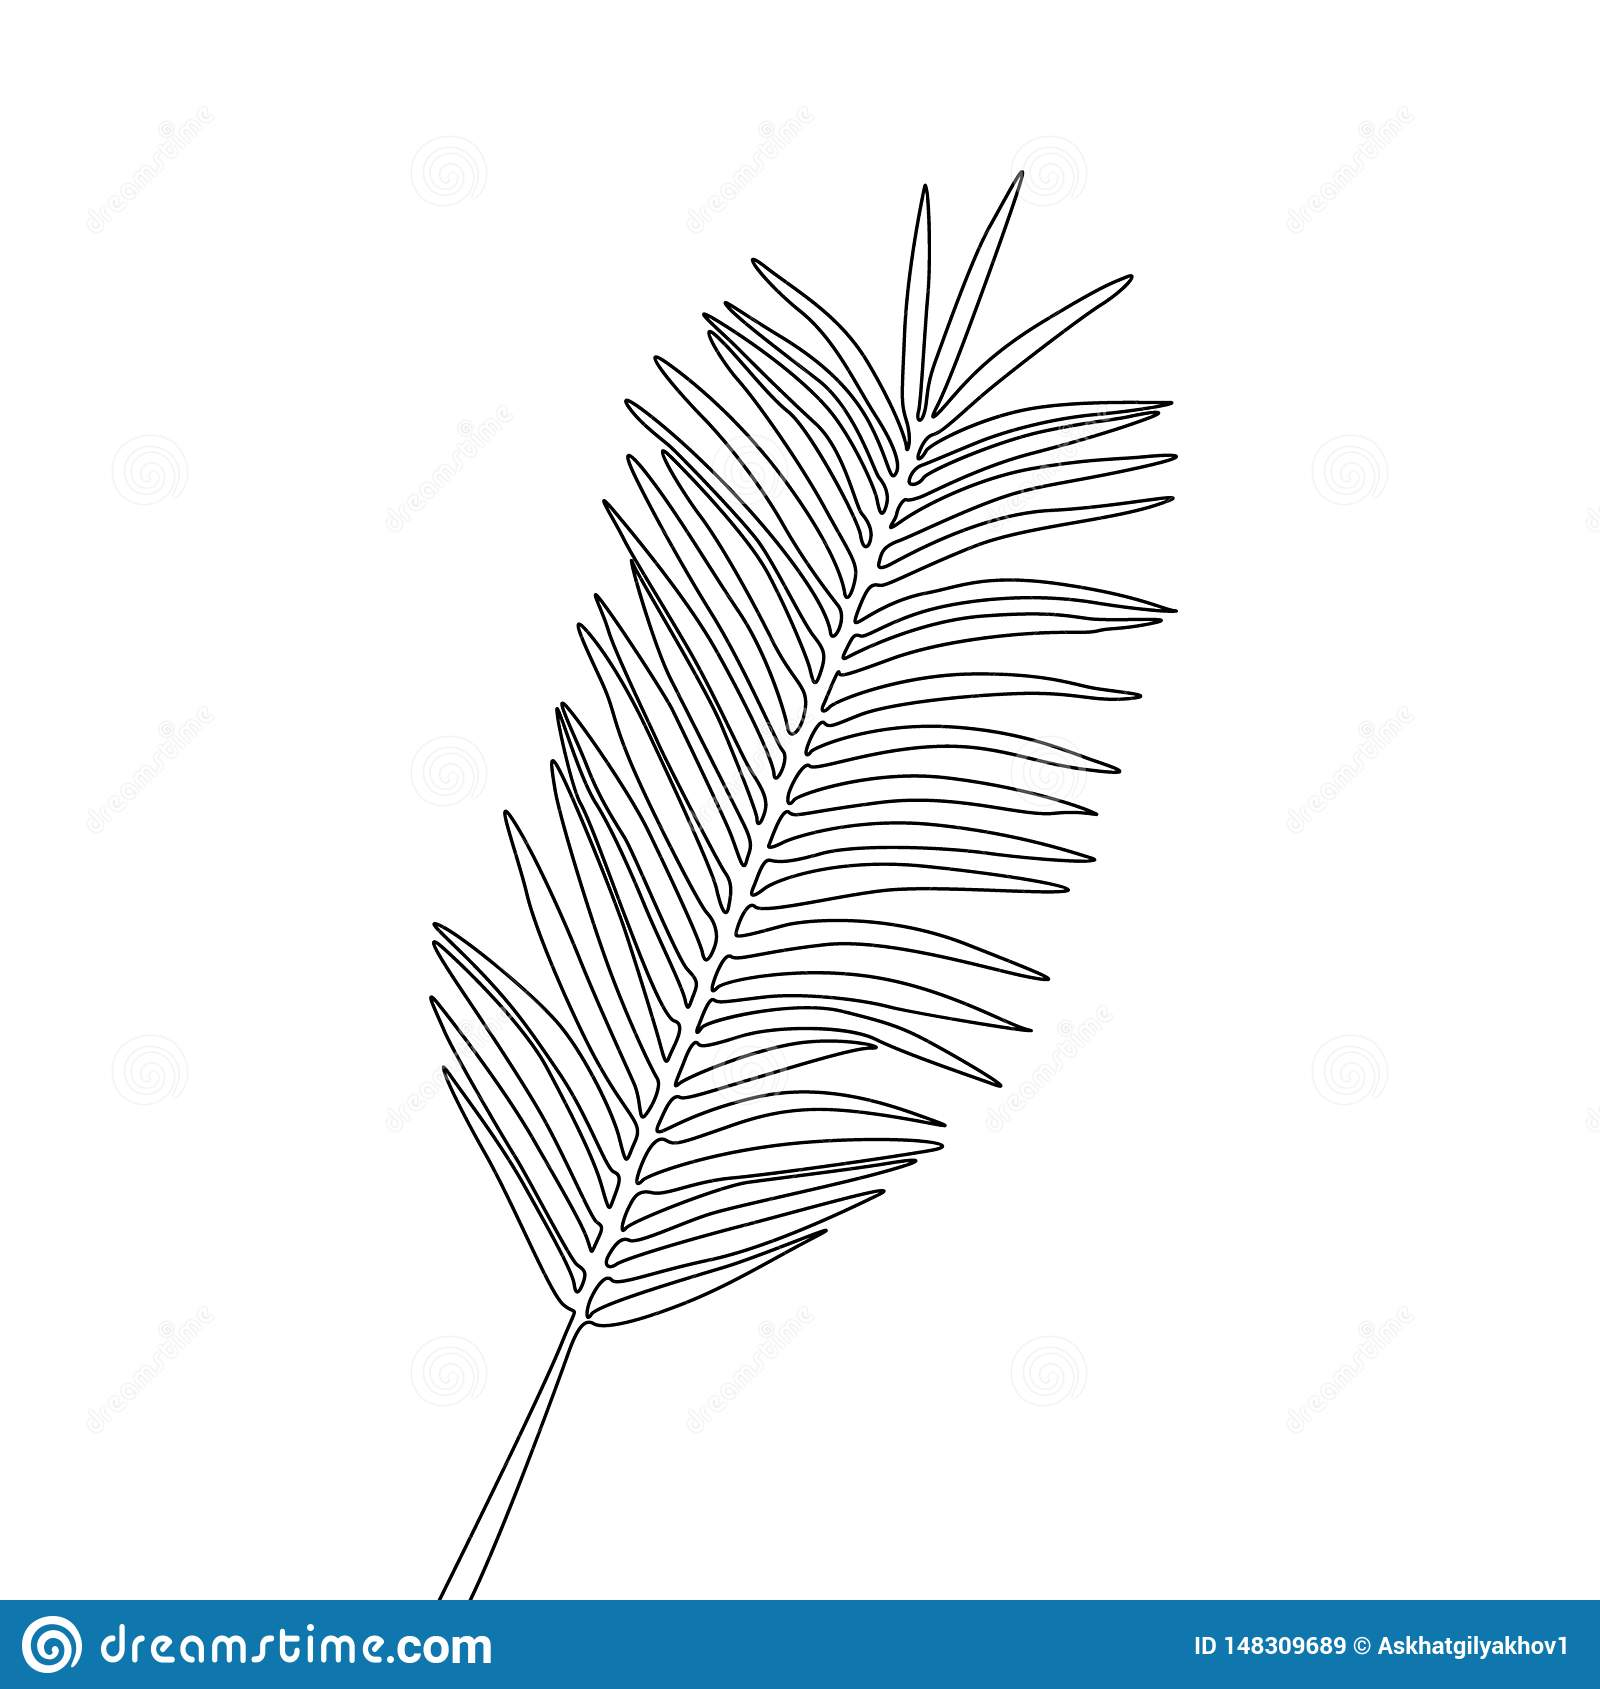 One line drawing areca palm leaf. Continuous line exotic tropical plant.